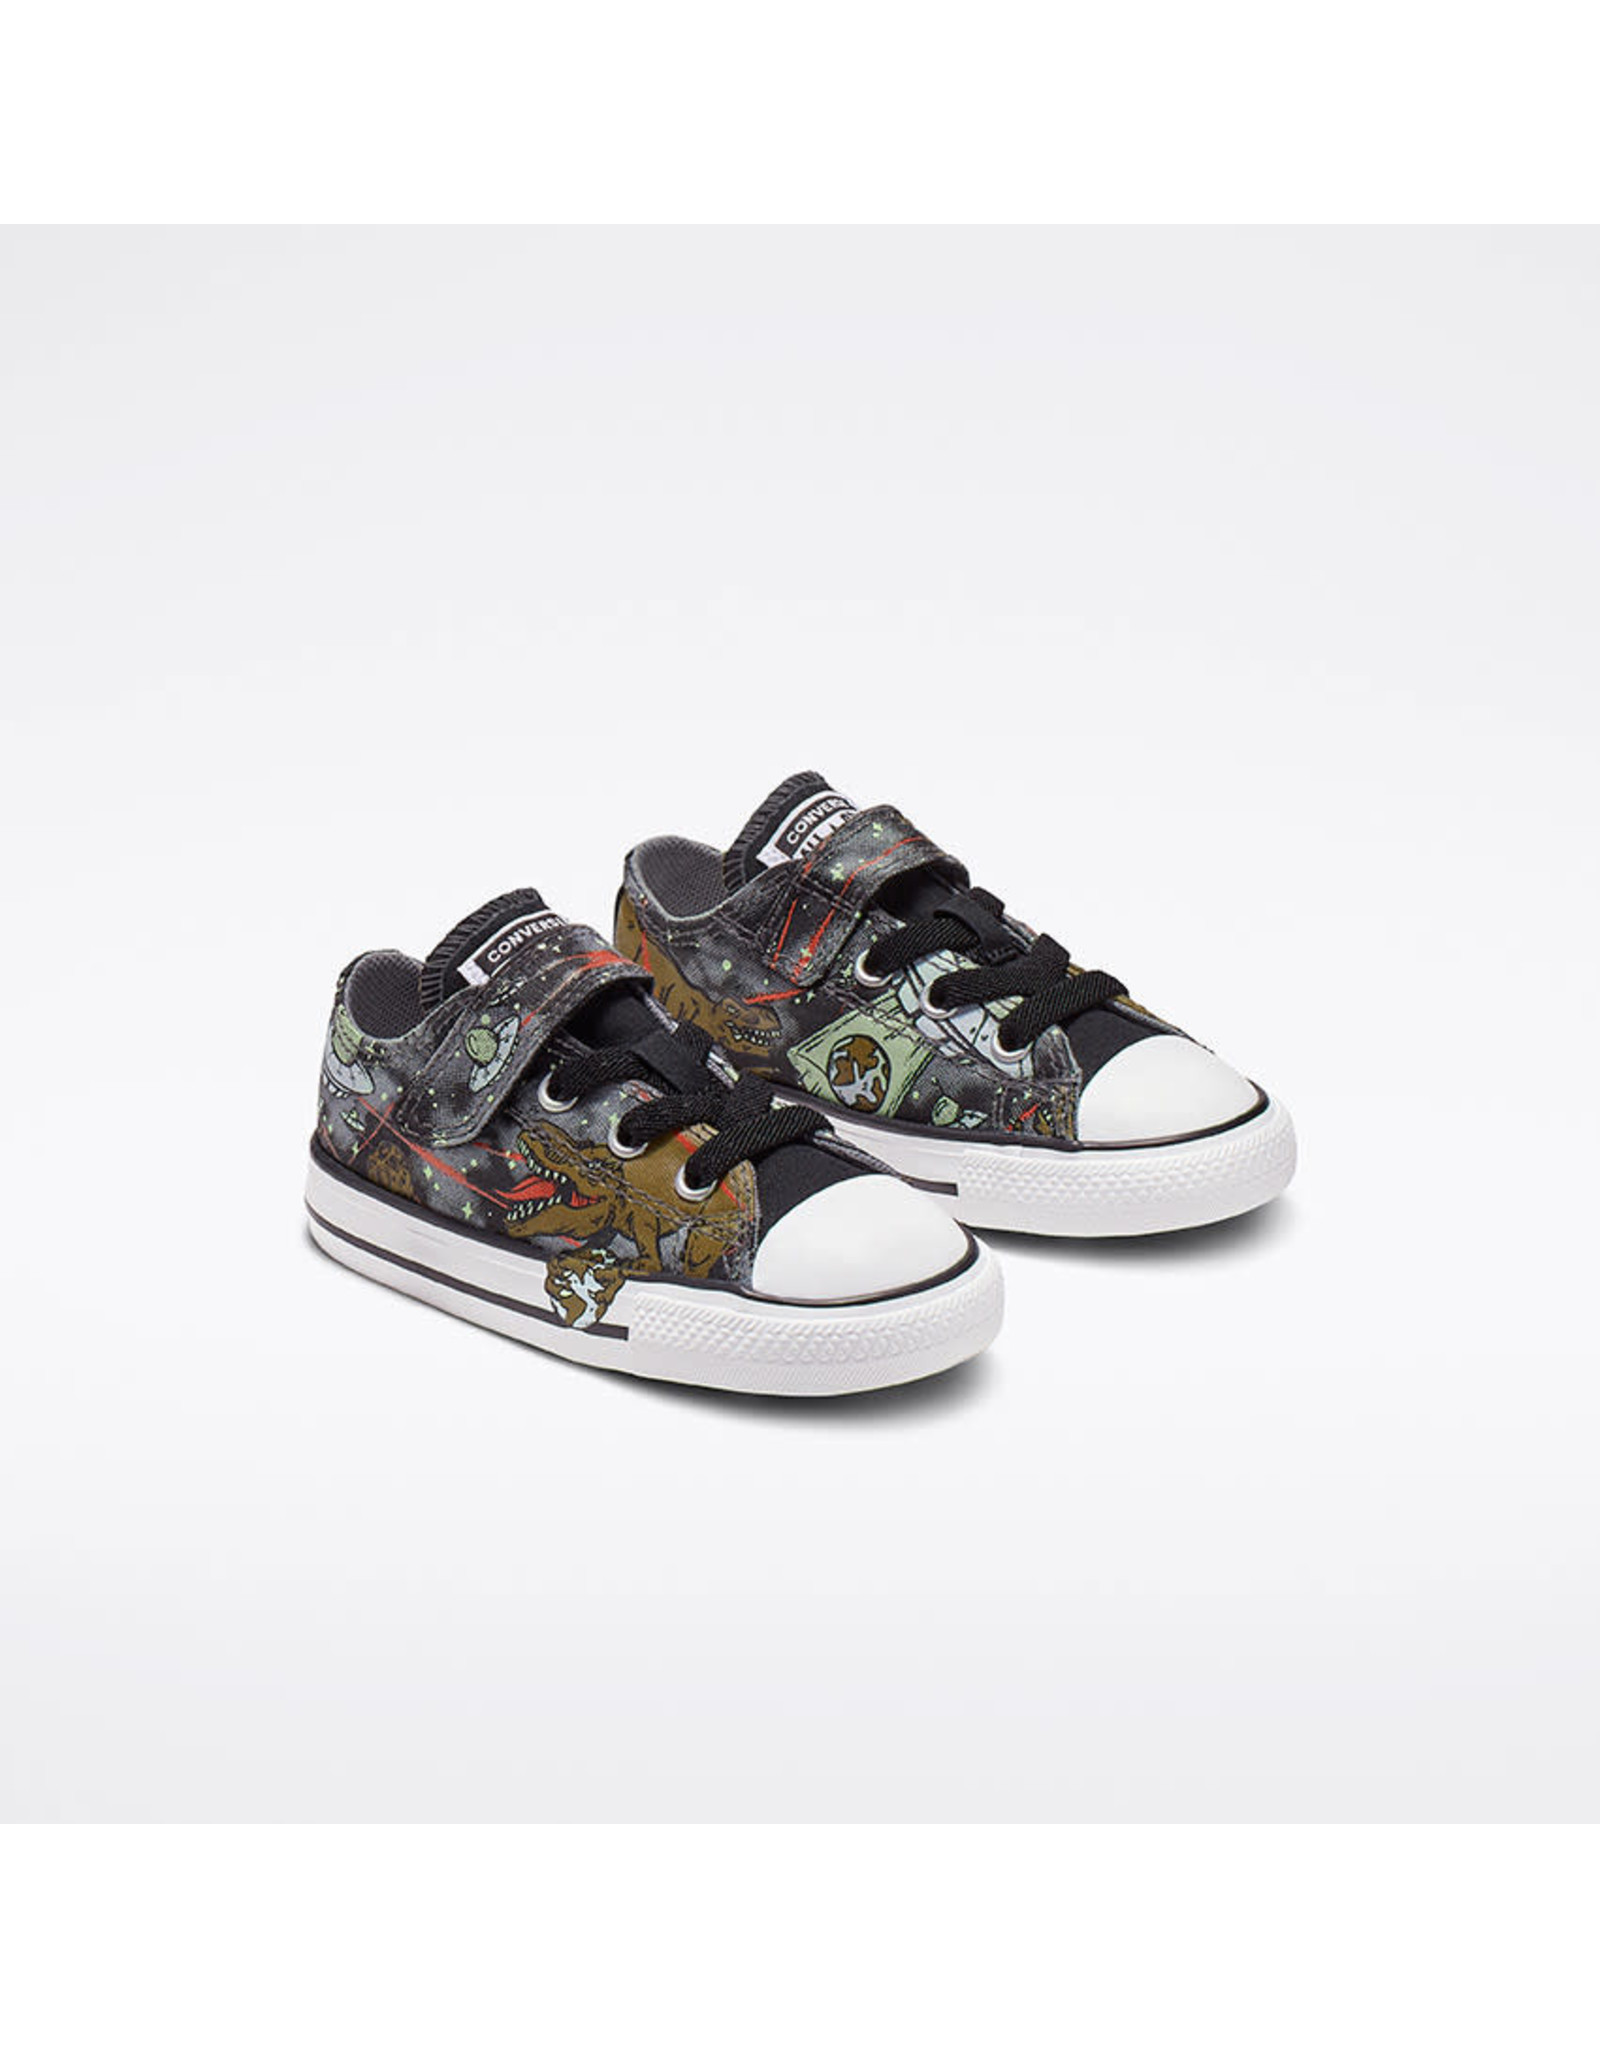 CONVERSE CHUCK TAYLOR ALL STAR 1V OX COOL GREY/OLIVE FLAK/BLACK CKUFX-765394C